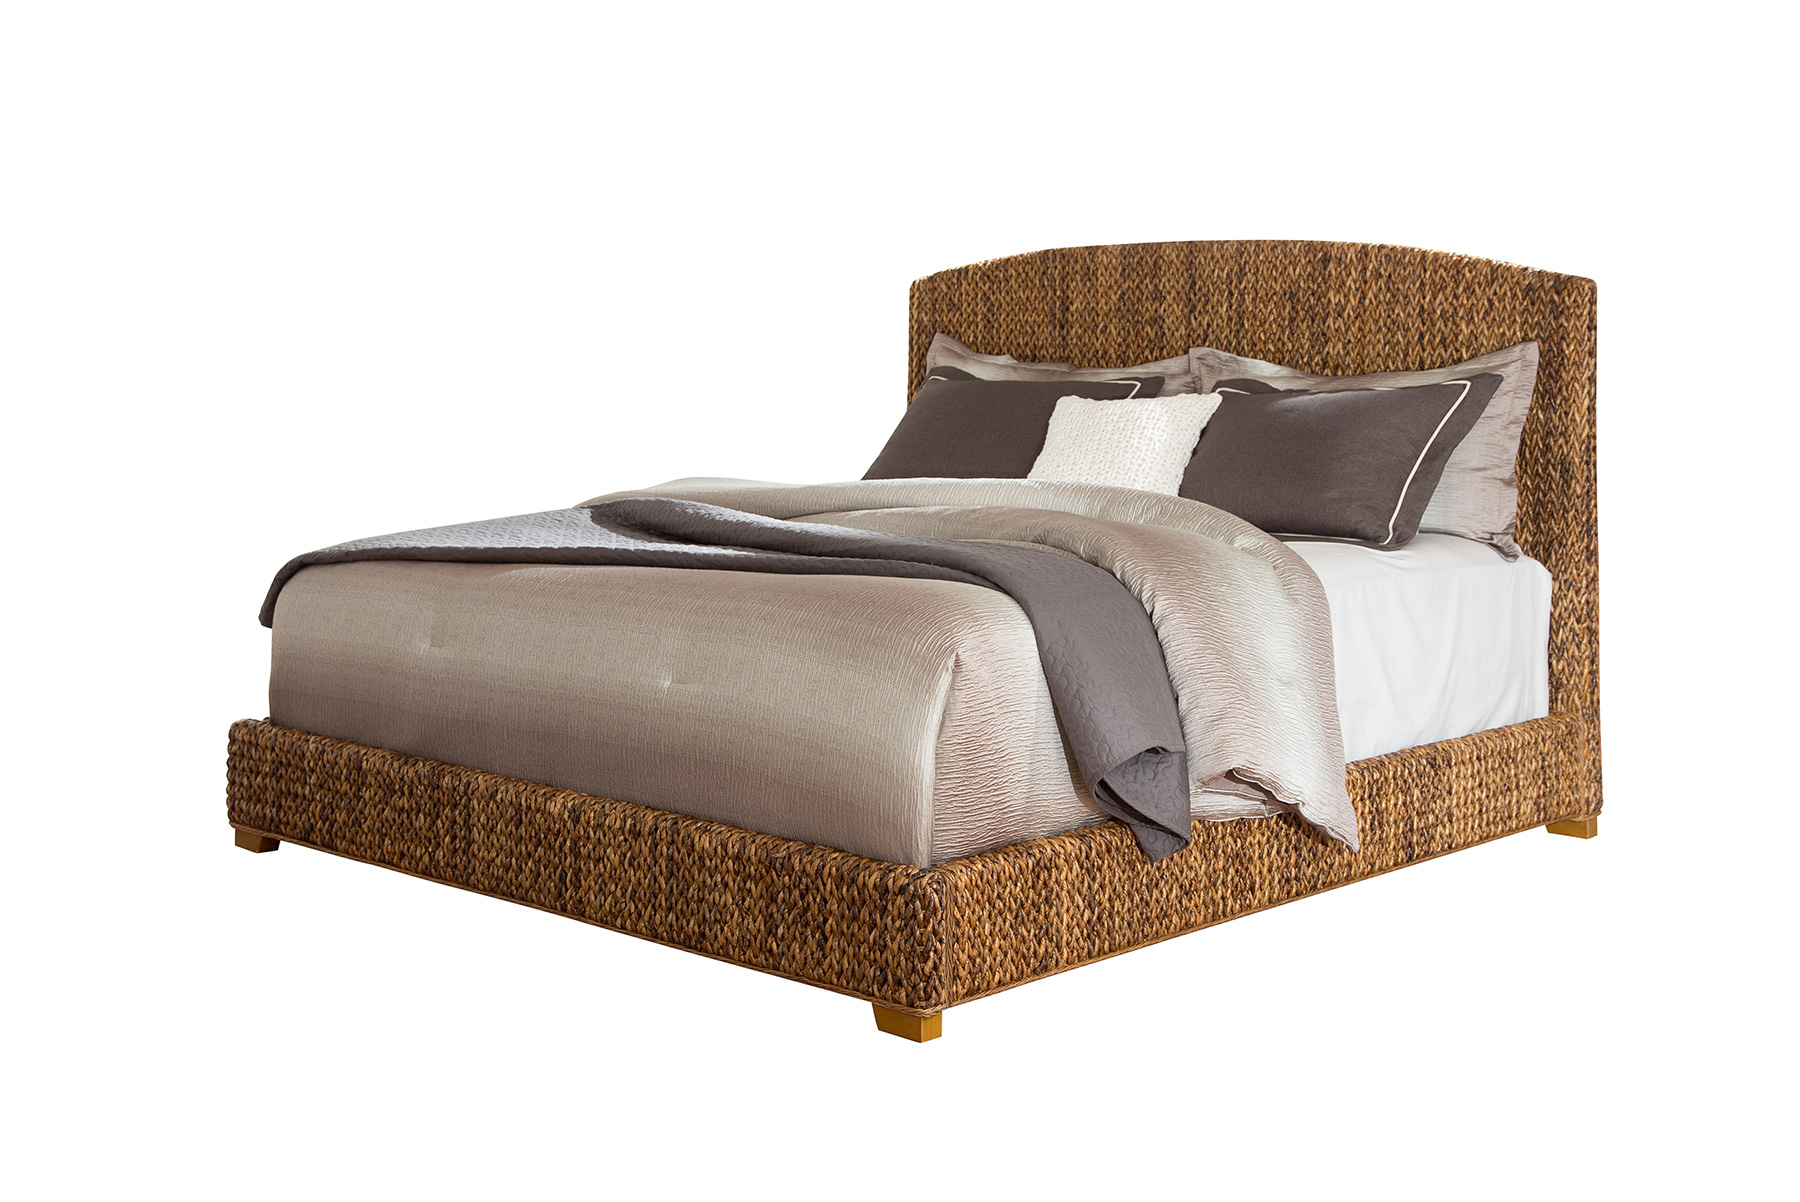 Coaster Laughton 300501KW Woven Banana Leaf California King Bed | Becku0027s  Furniture | Platform Beds/Low Profile Beds